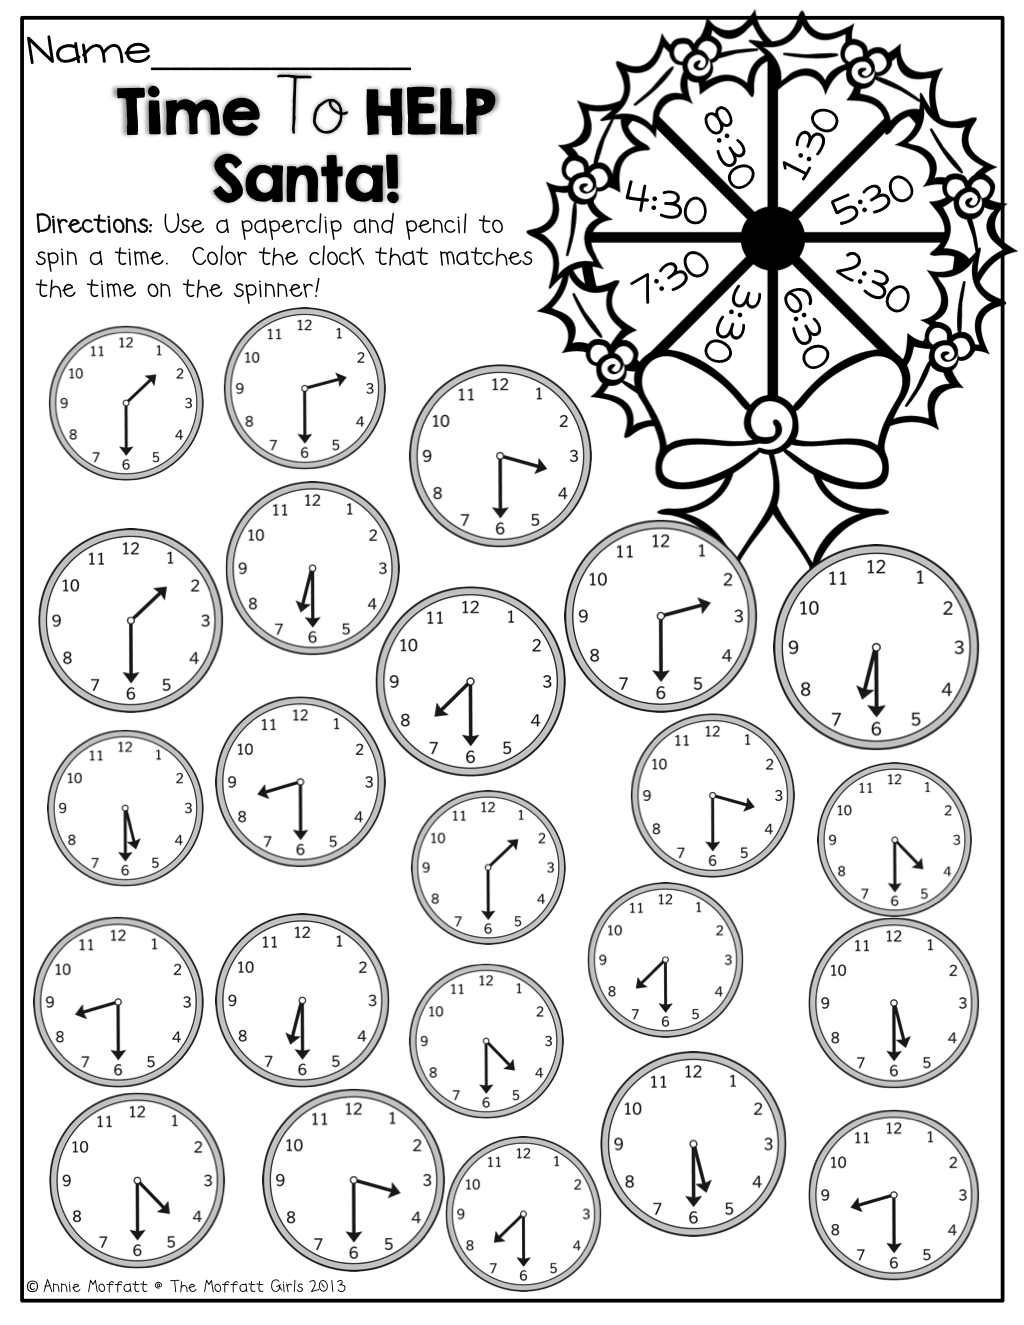 Spin a time on the wreath with a paper clip and pencil